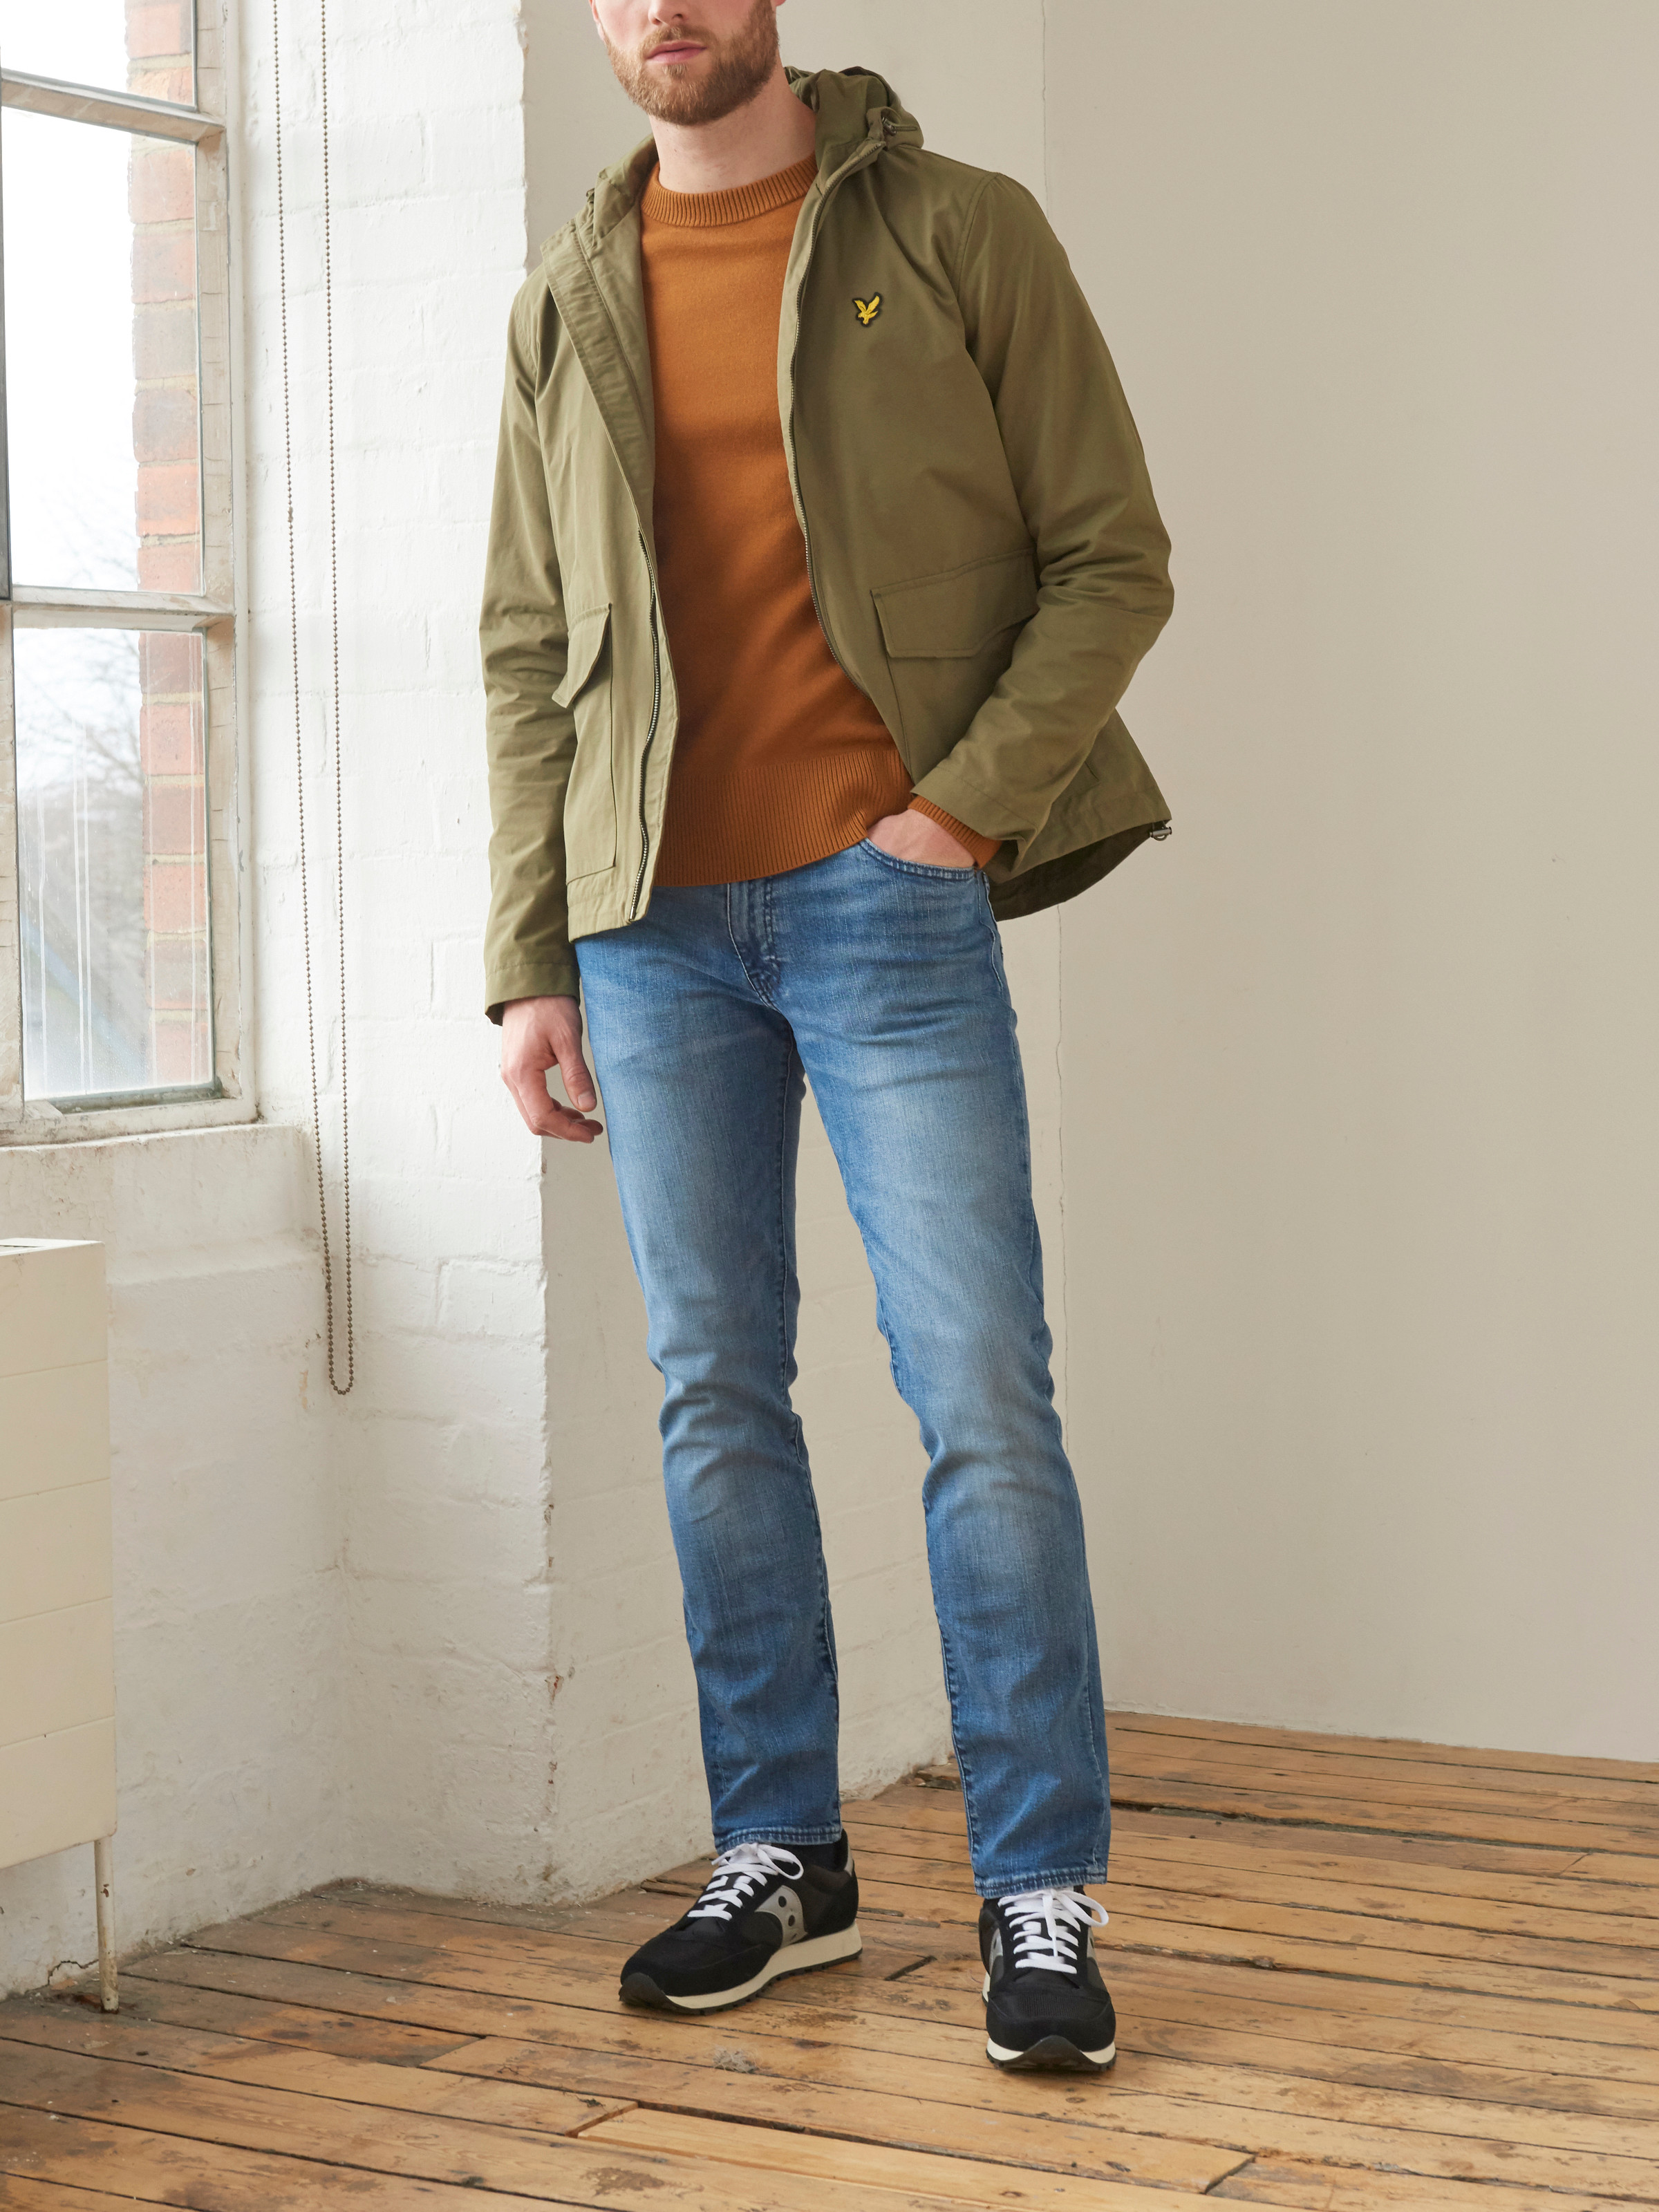 Men's outfit idea for 2021 with waterproof jacket / windbreaker, bold coloured sweatshirt, mid blue jeans, neutral trainers. Suitable for spring, autumn and winter.